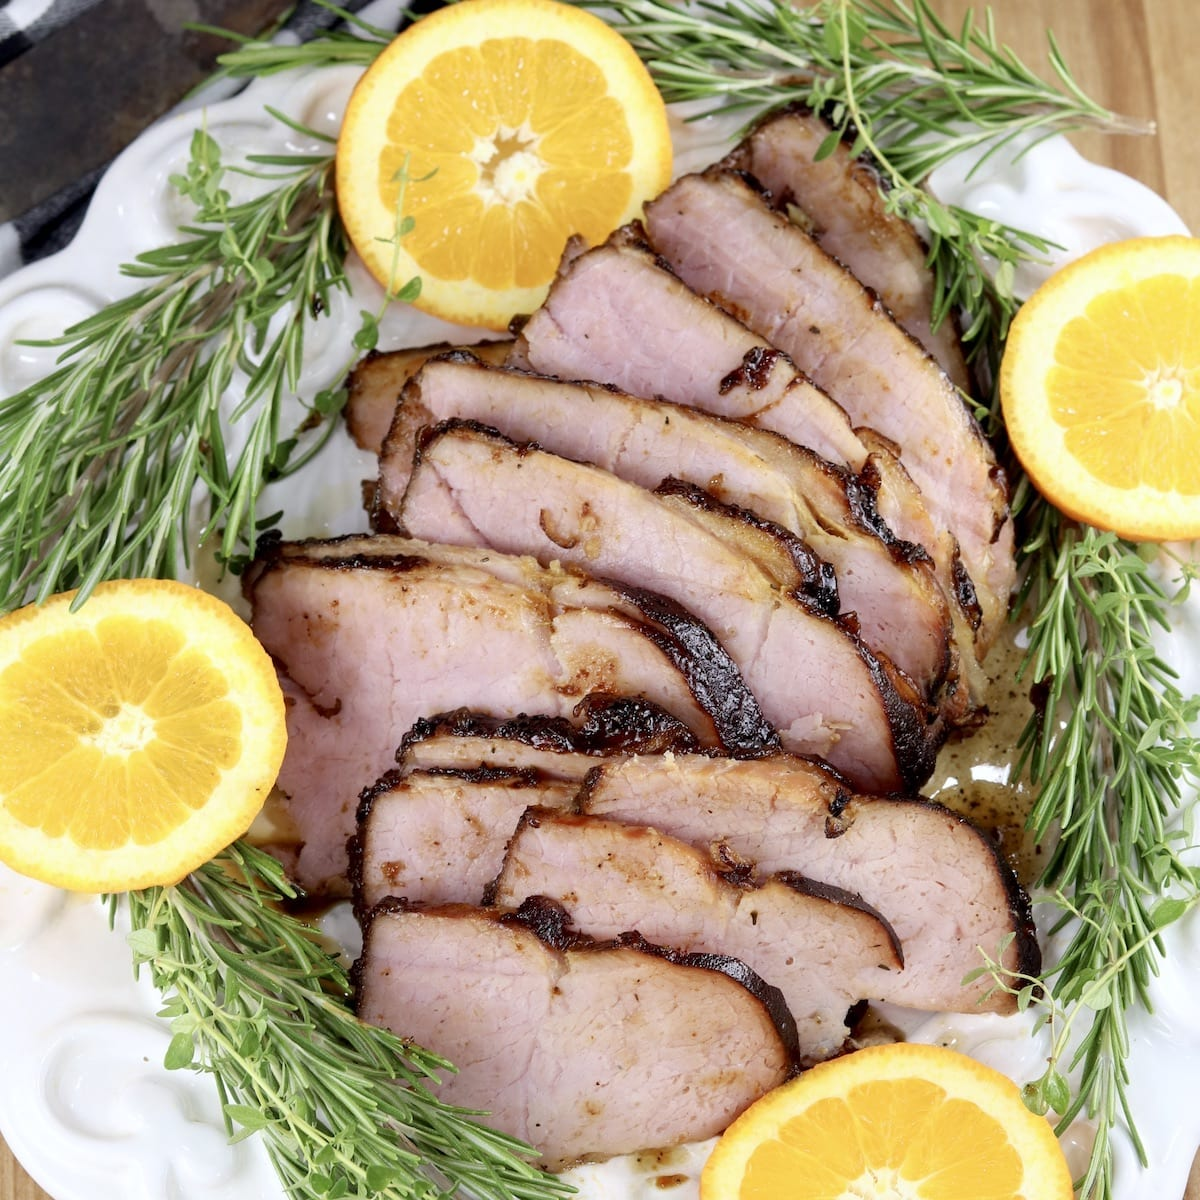 Coca-Cola Glazed Ham, sliced on a platter with fresh rosemary sprigs and sliced oranges